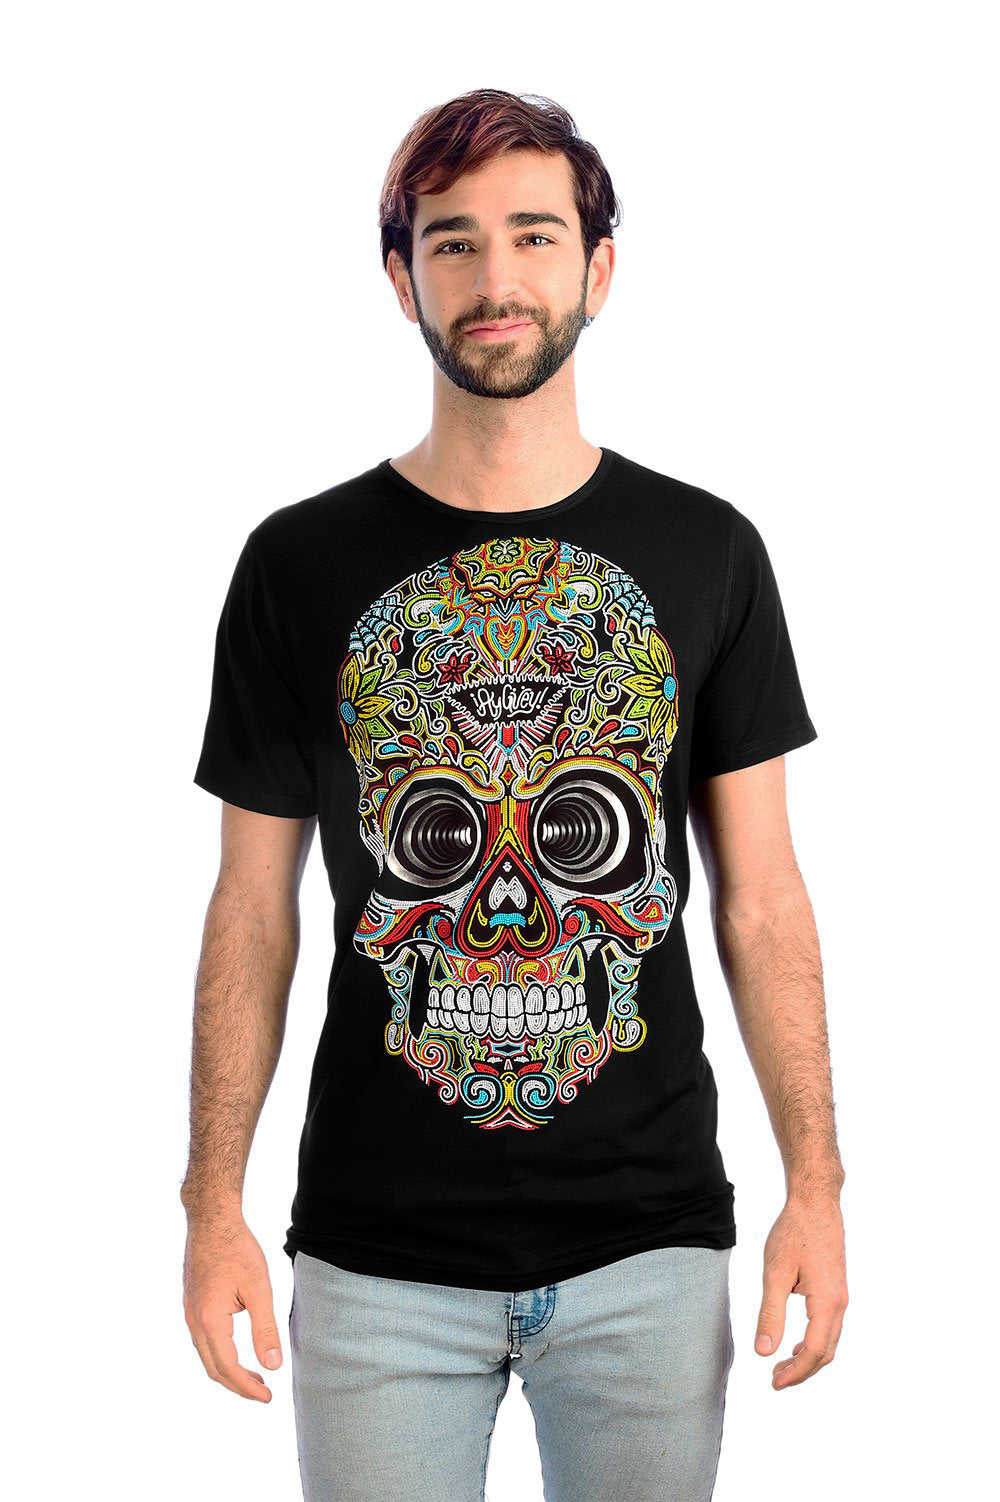 CALA PEYOTE II - T-Shirt Men - ¡Ay Güey! USA